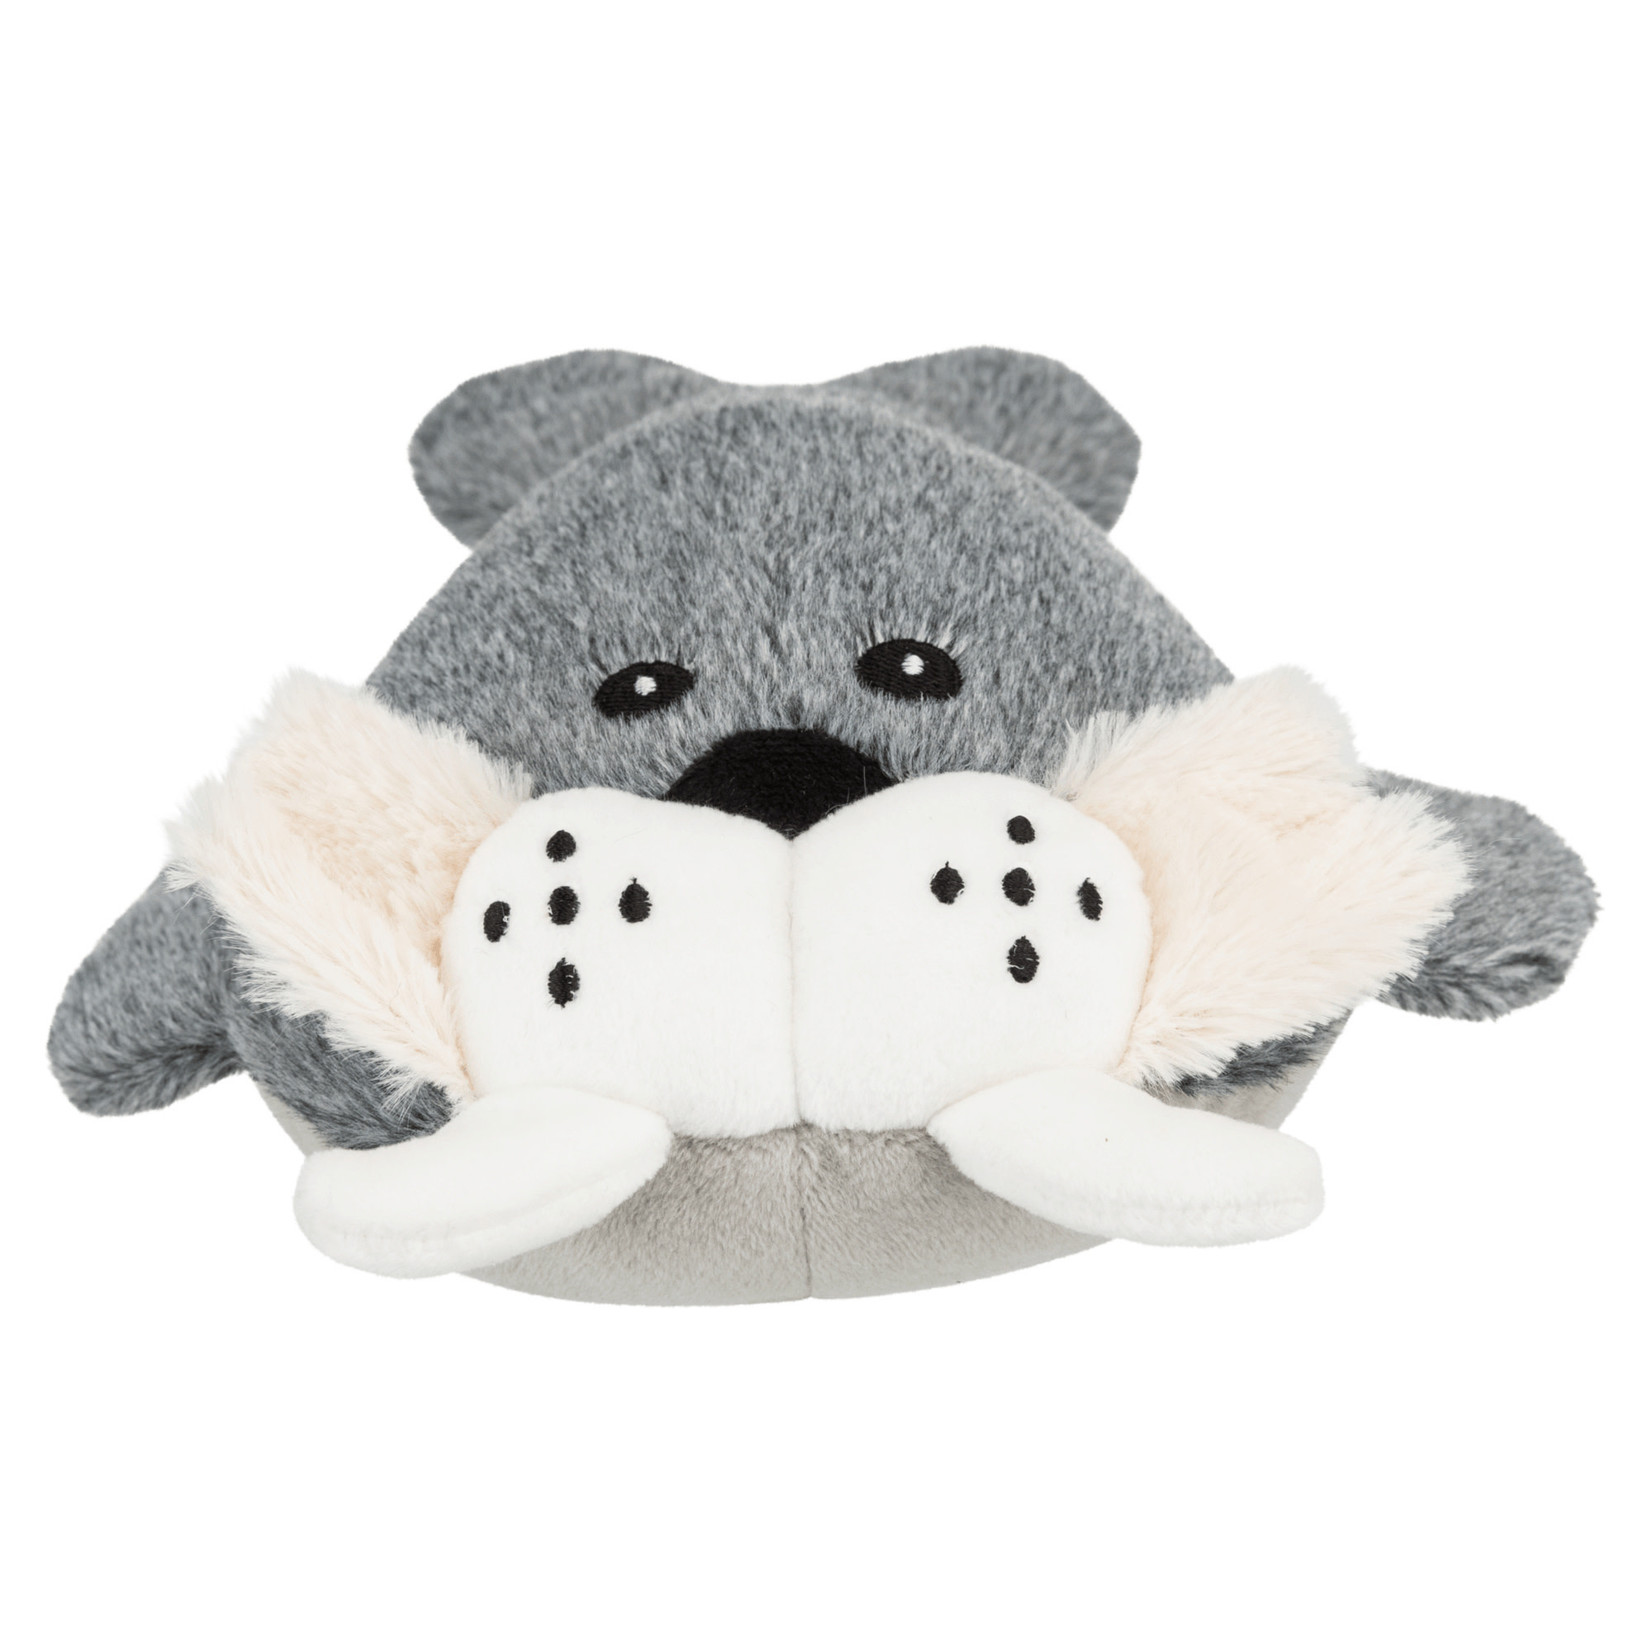 Trixie Be Nordic Walrus, Til Dog Toy, 28cm